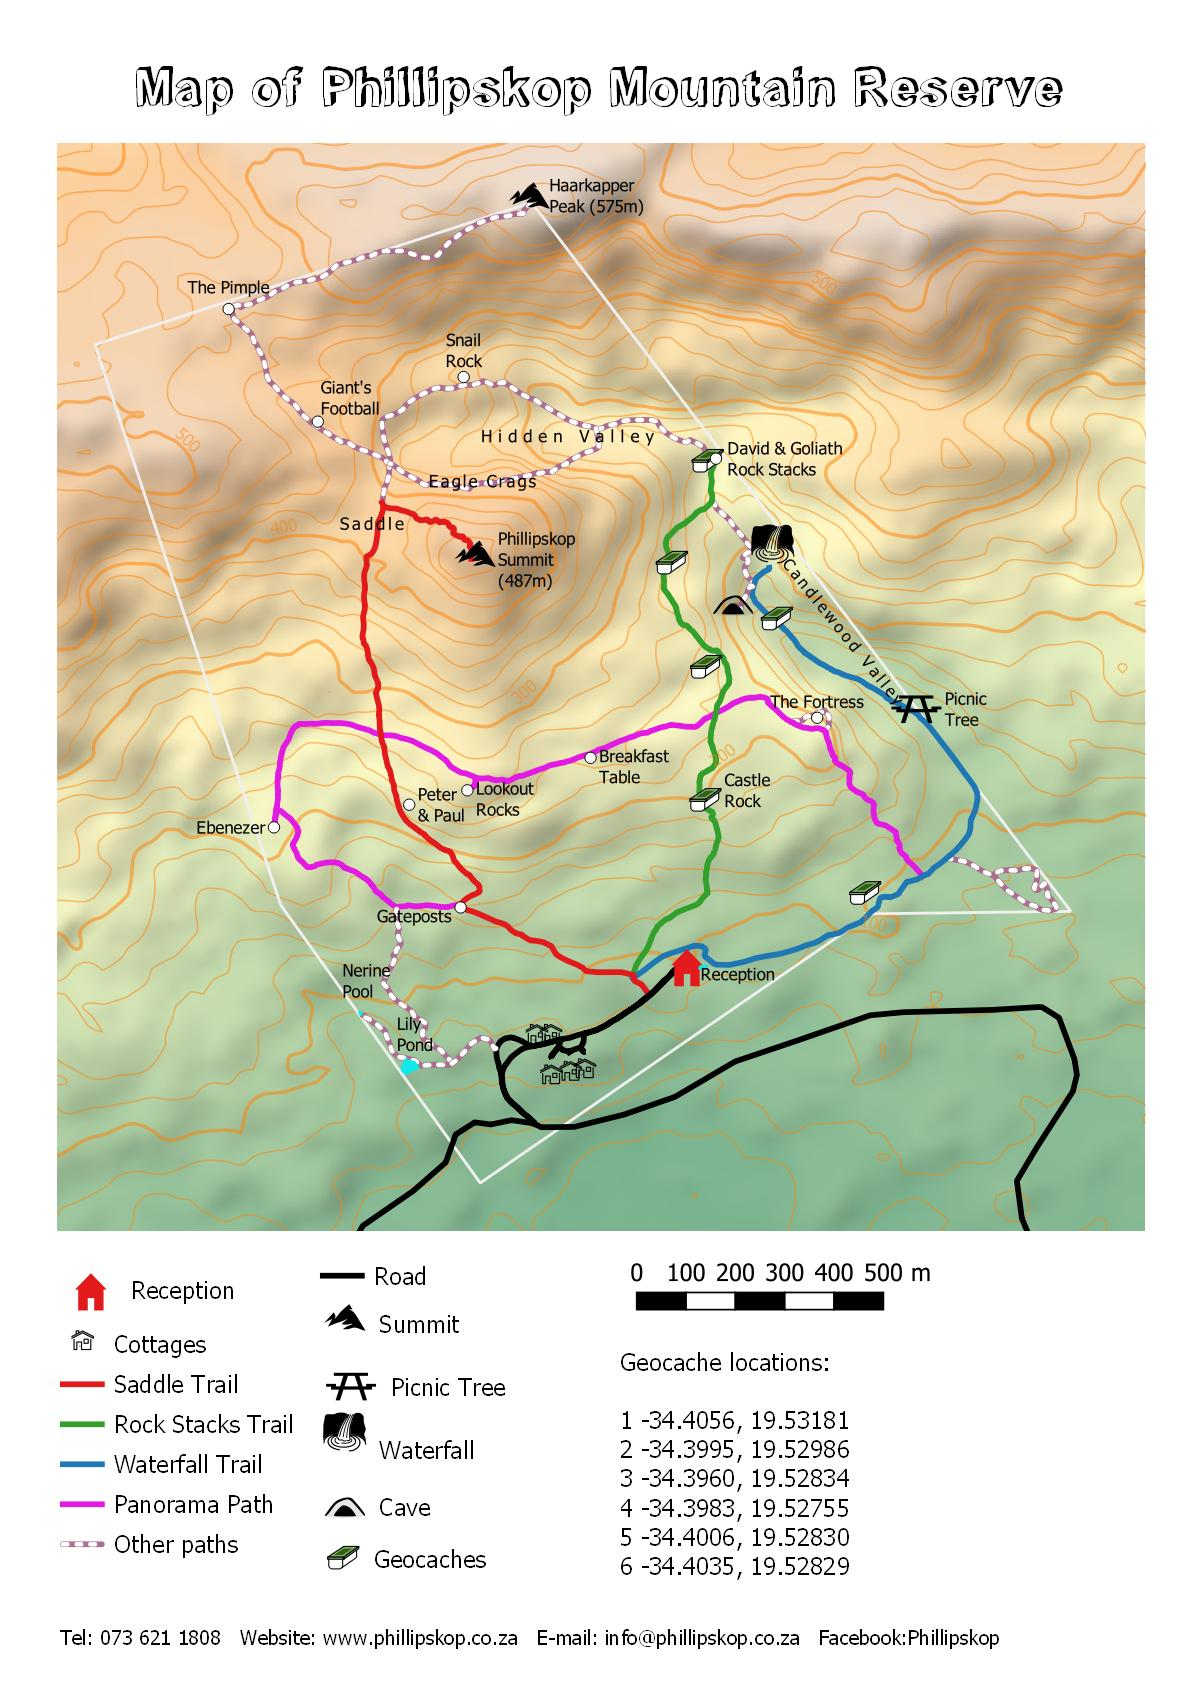 Map of Hiking Trails at Phillipskop Mountain Reserve